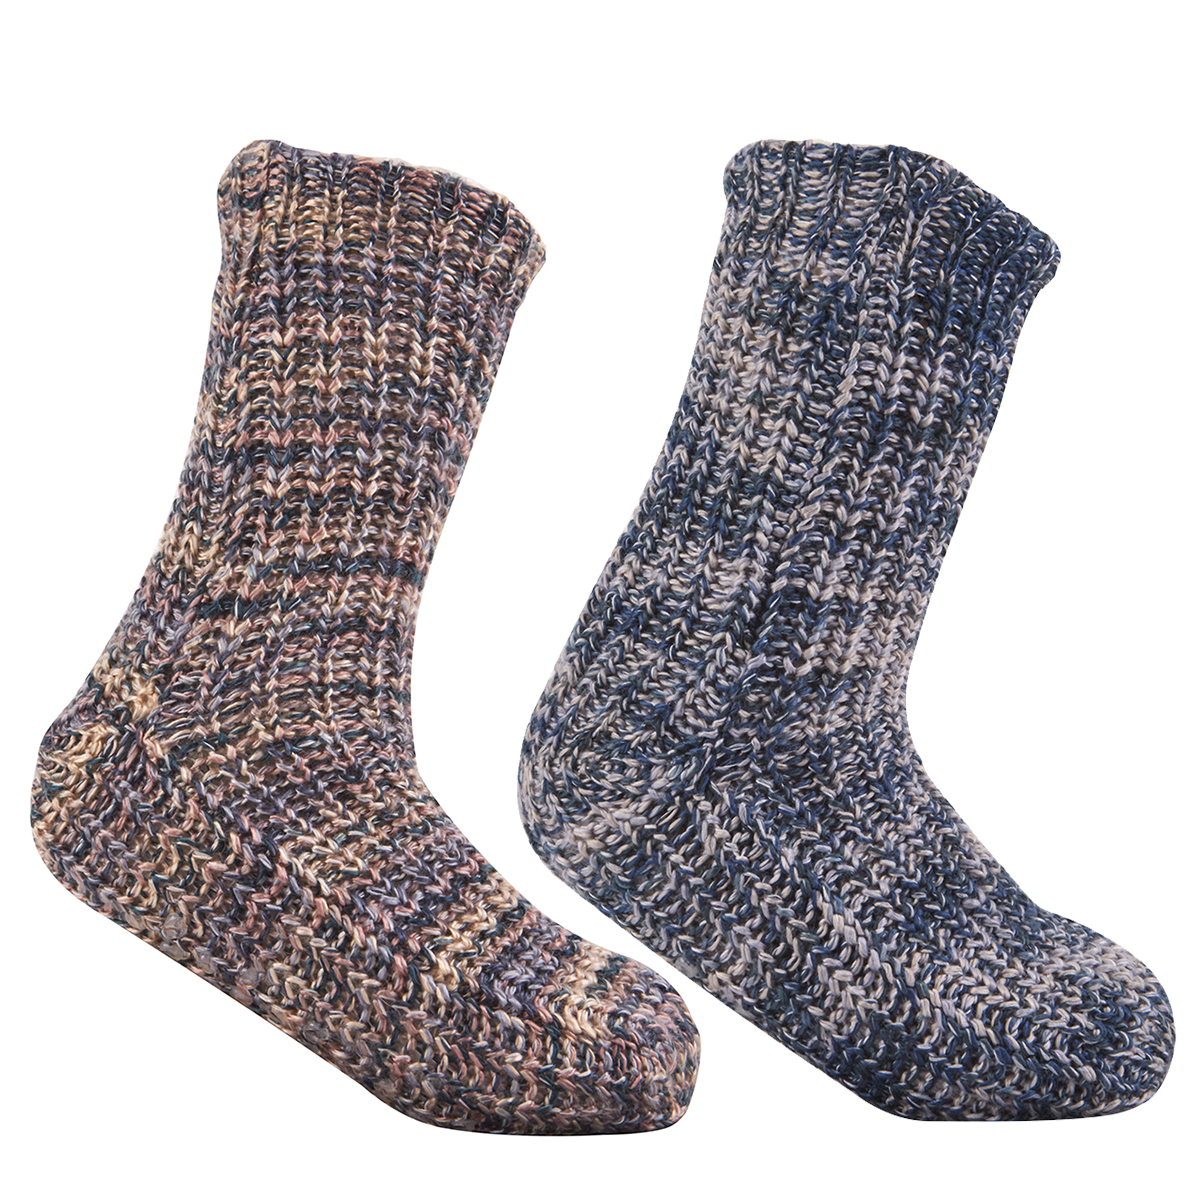 6 Pairs Winter Women Ladies Warm Cosy Lounge Soft Floor Fluffy Bed Socks Durable